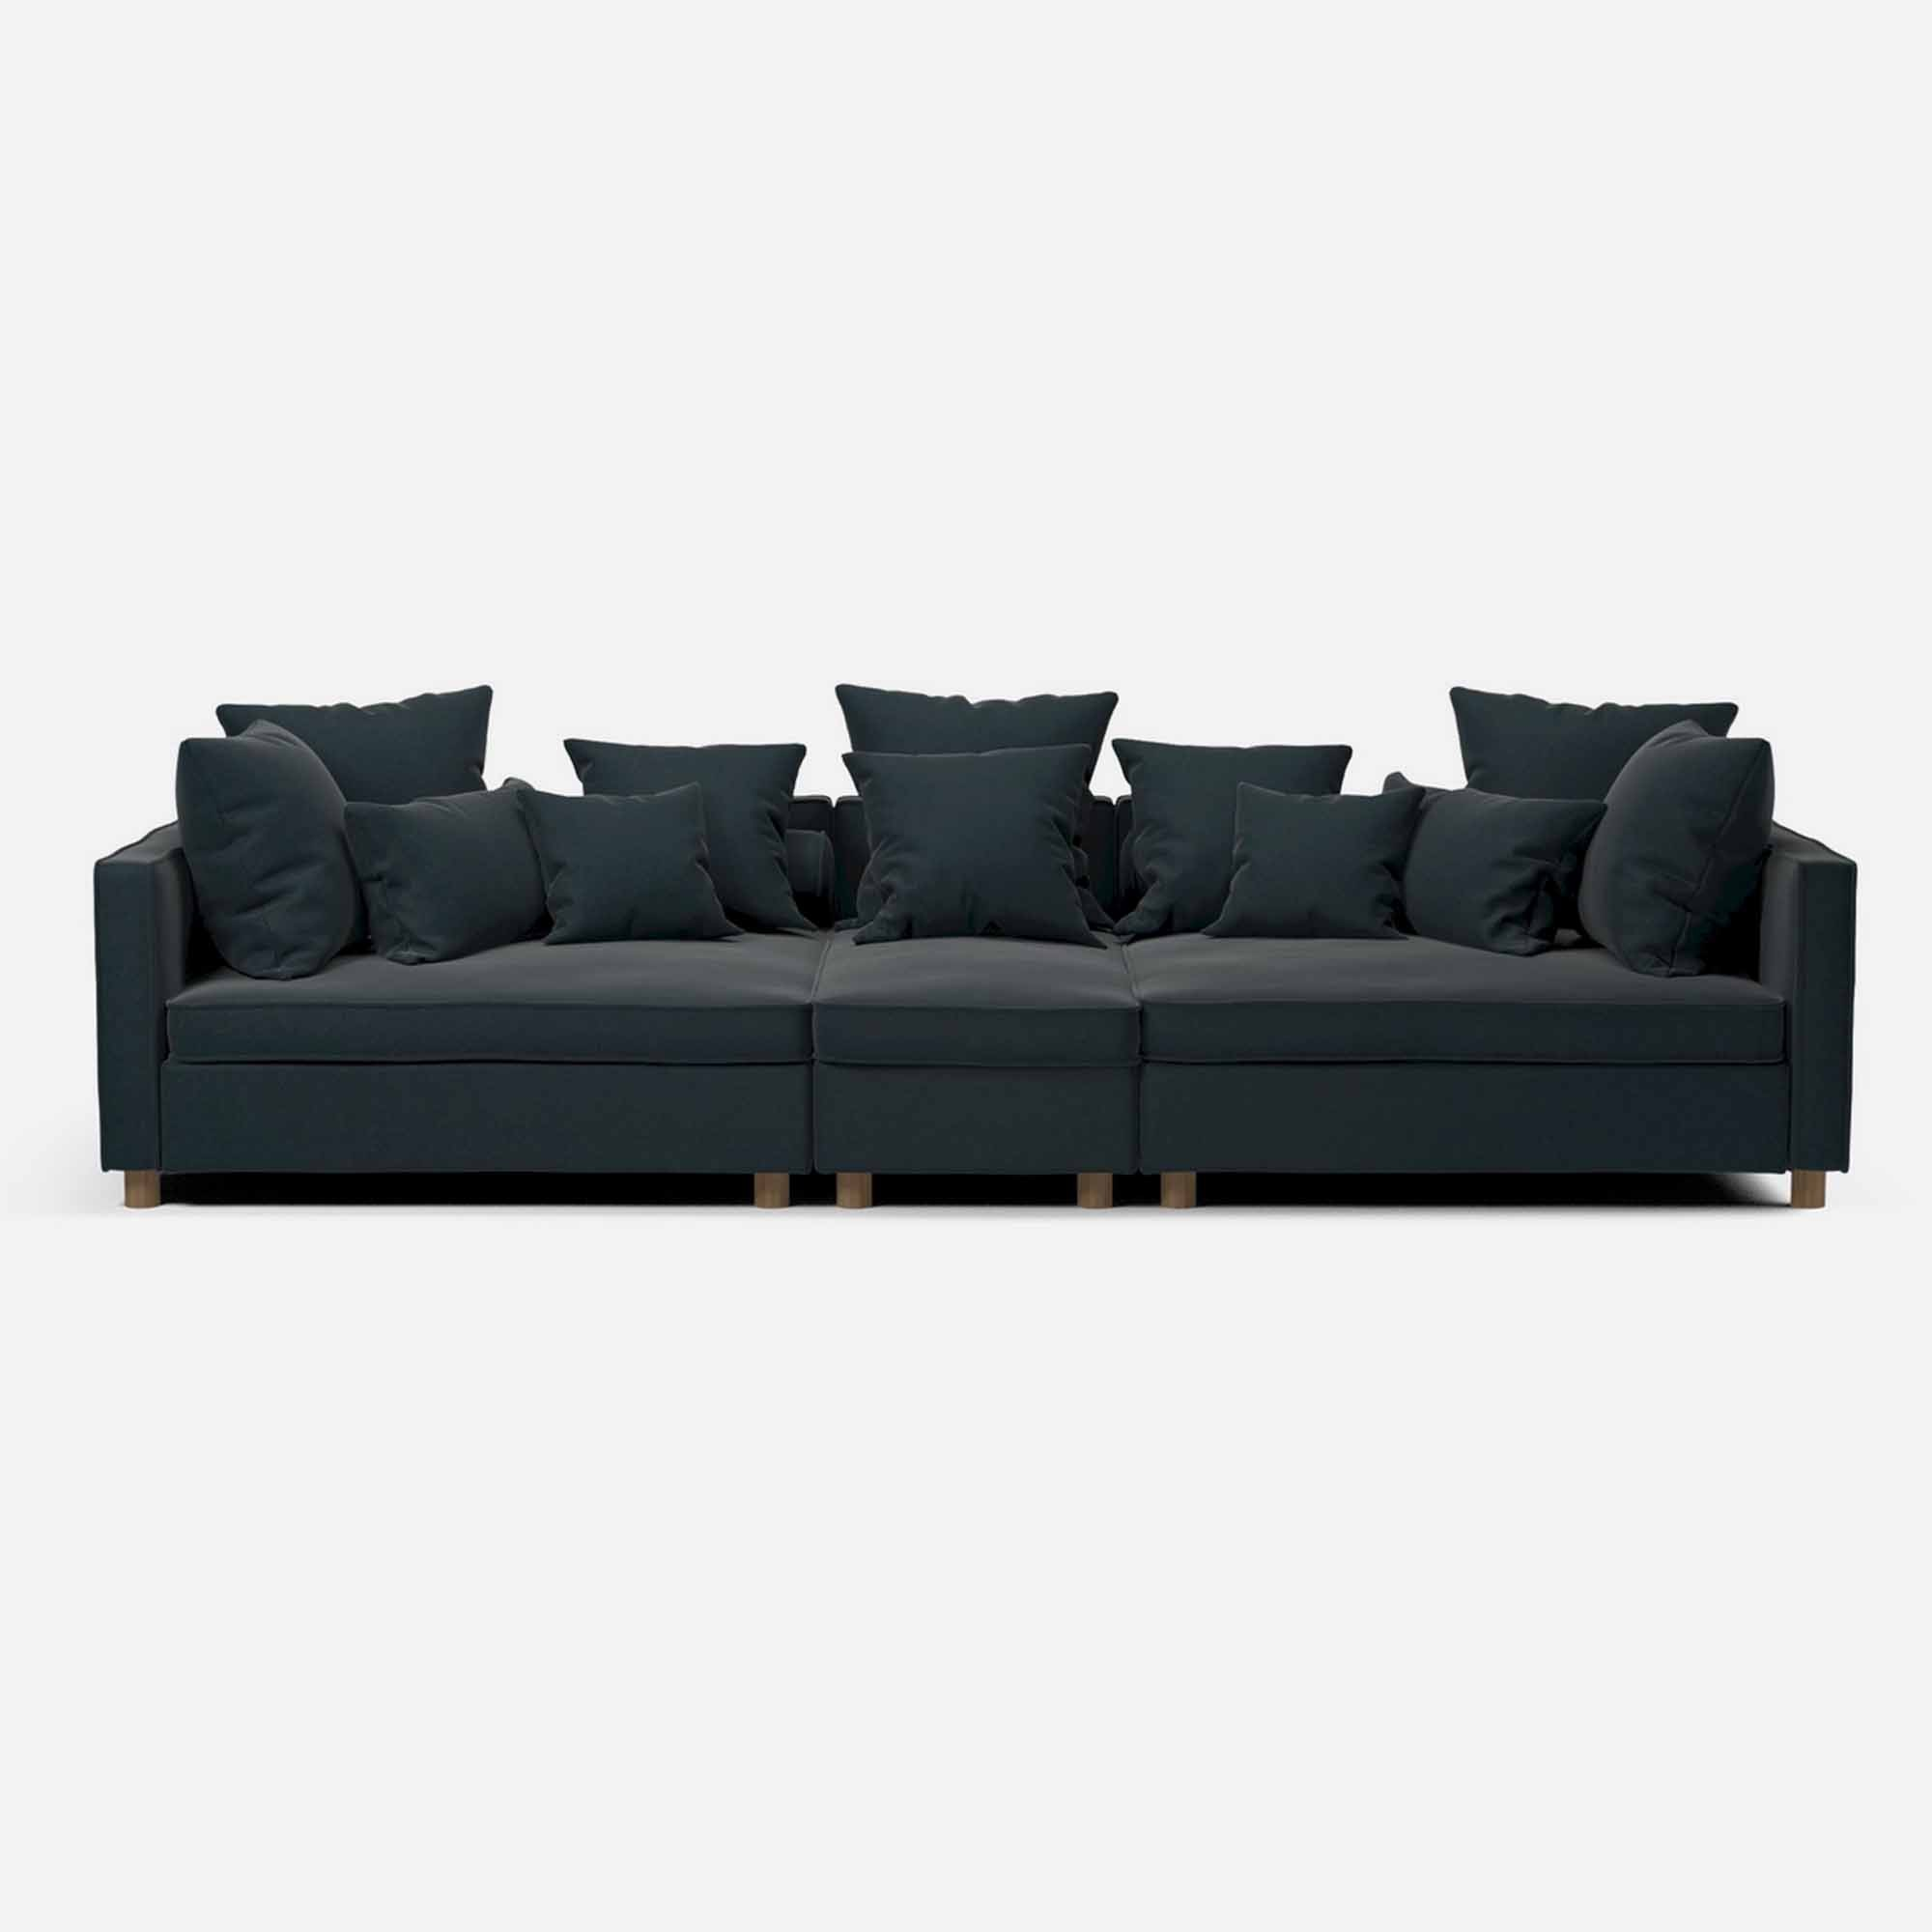 Mr BIG Sofa   3 Units S   BOLIA